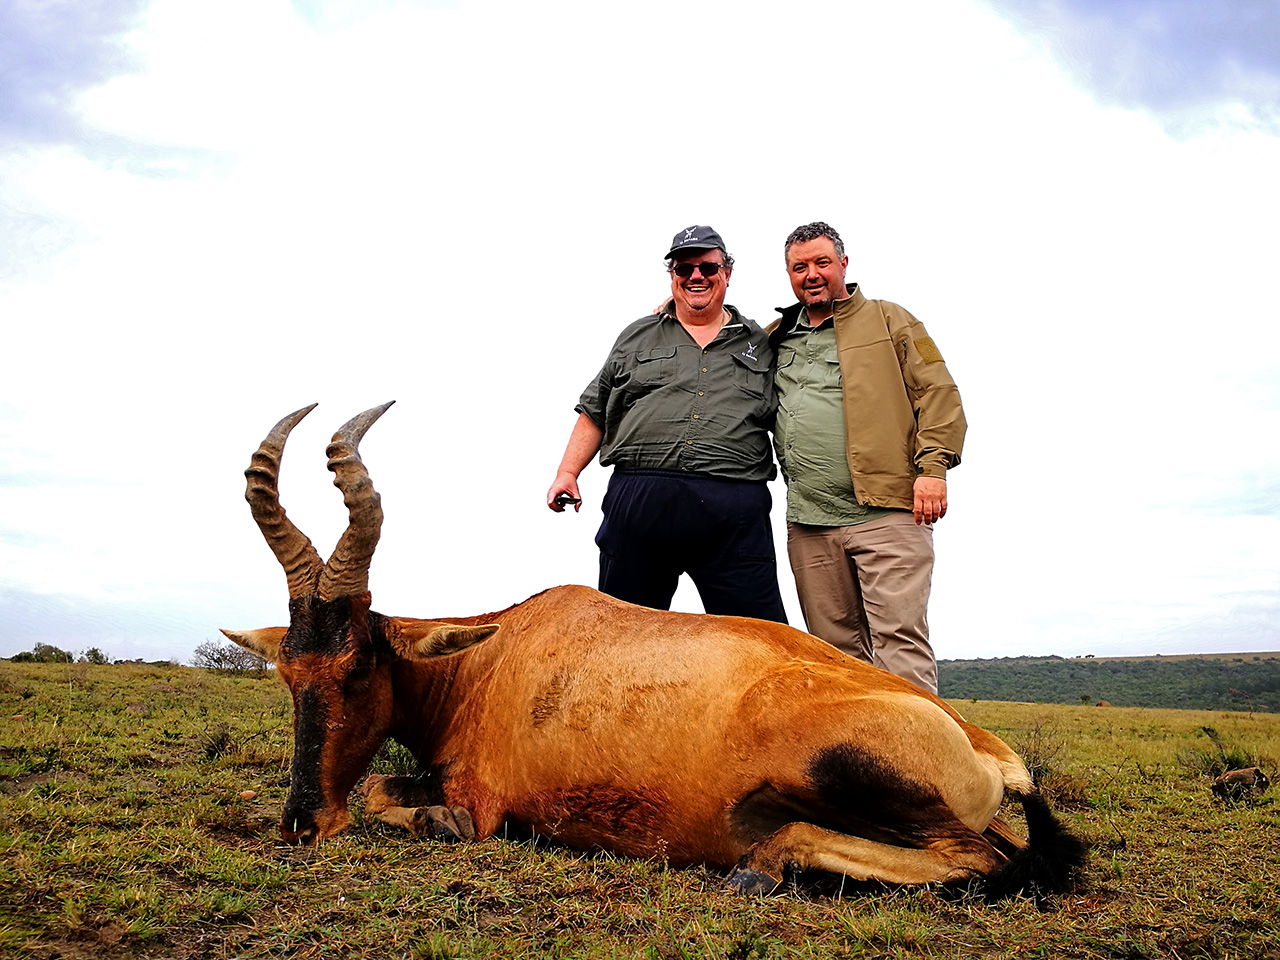 richard-red-hartebeest-adrian.jpg